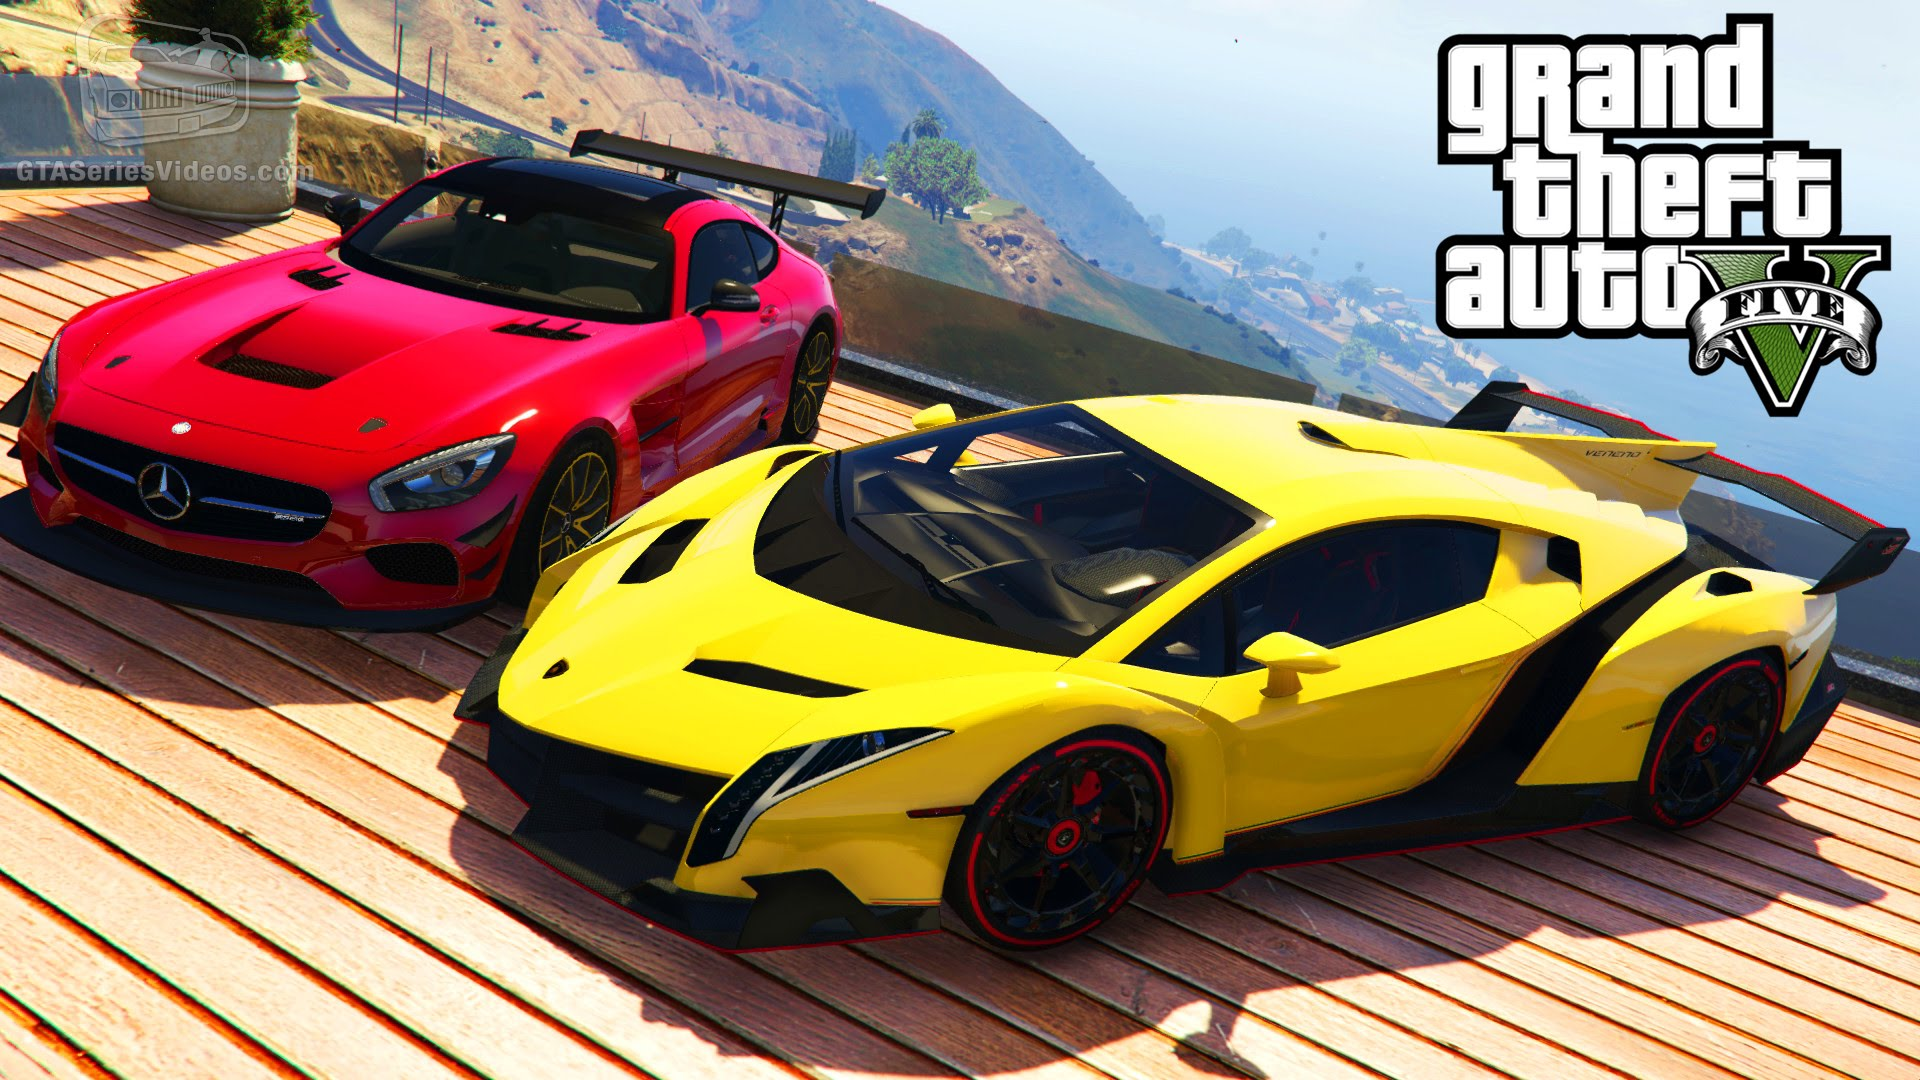 gta 5 car mods 5 lamborghini veneno bmw i8 mercedes benz amg gt and more gta junkies. Black Bedroom Furniture Sets. Home Design Ideas